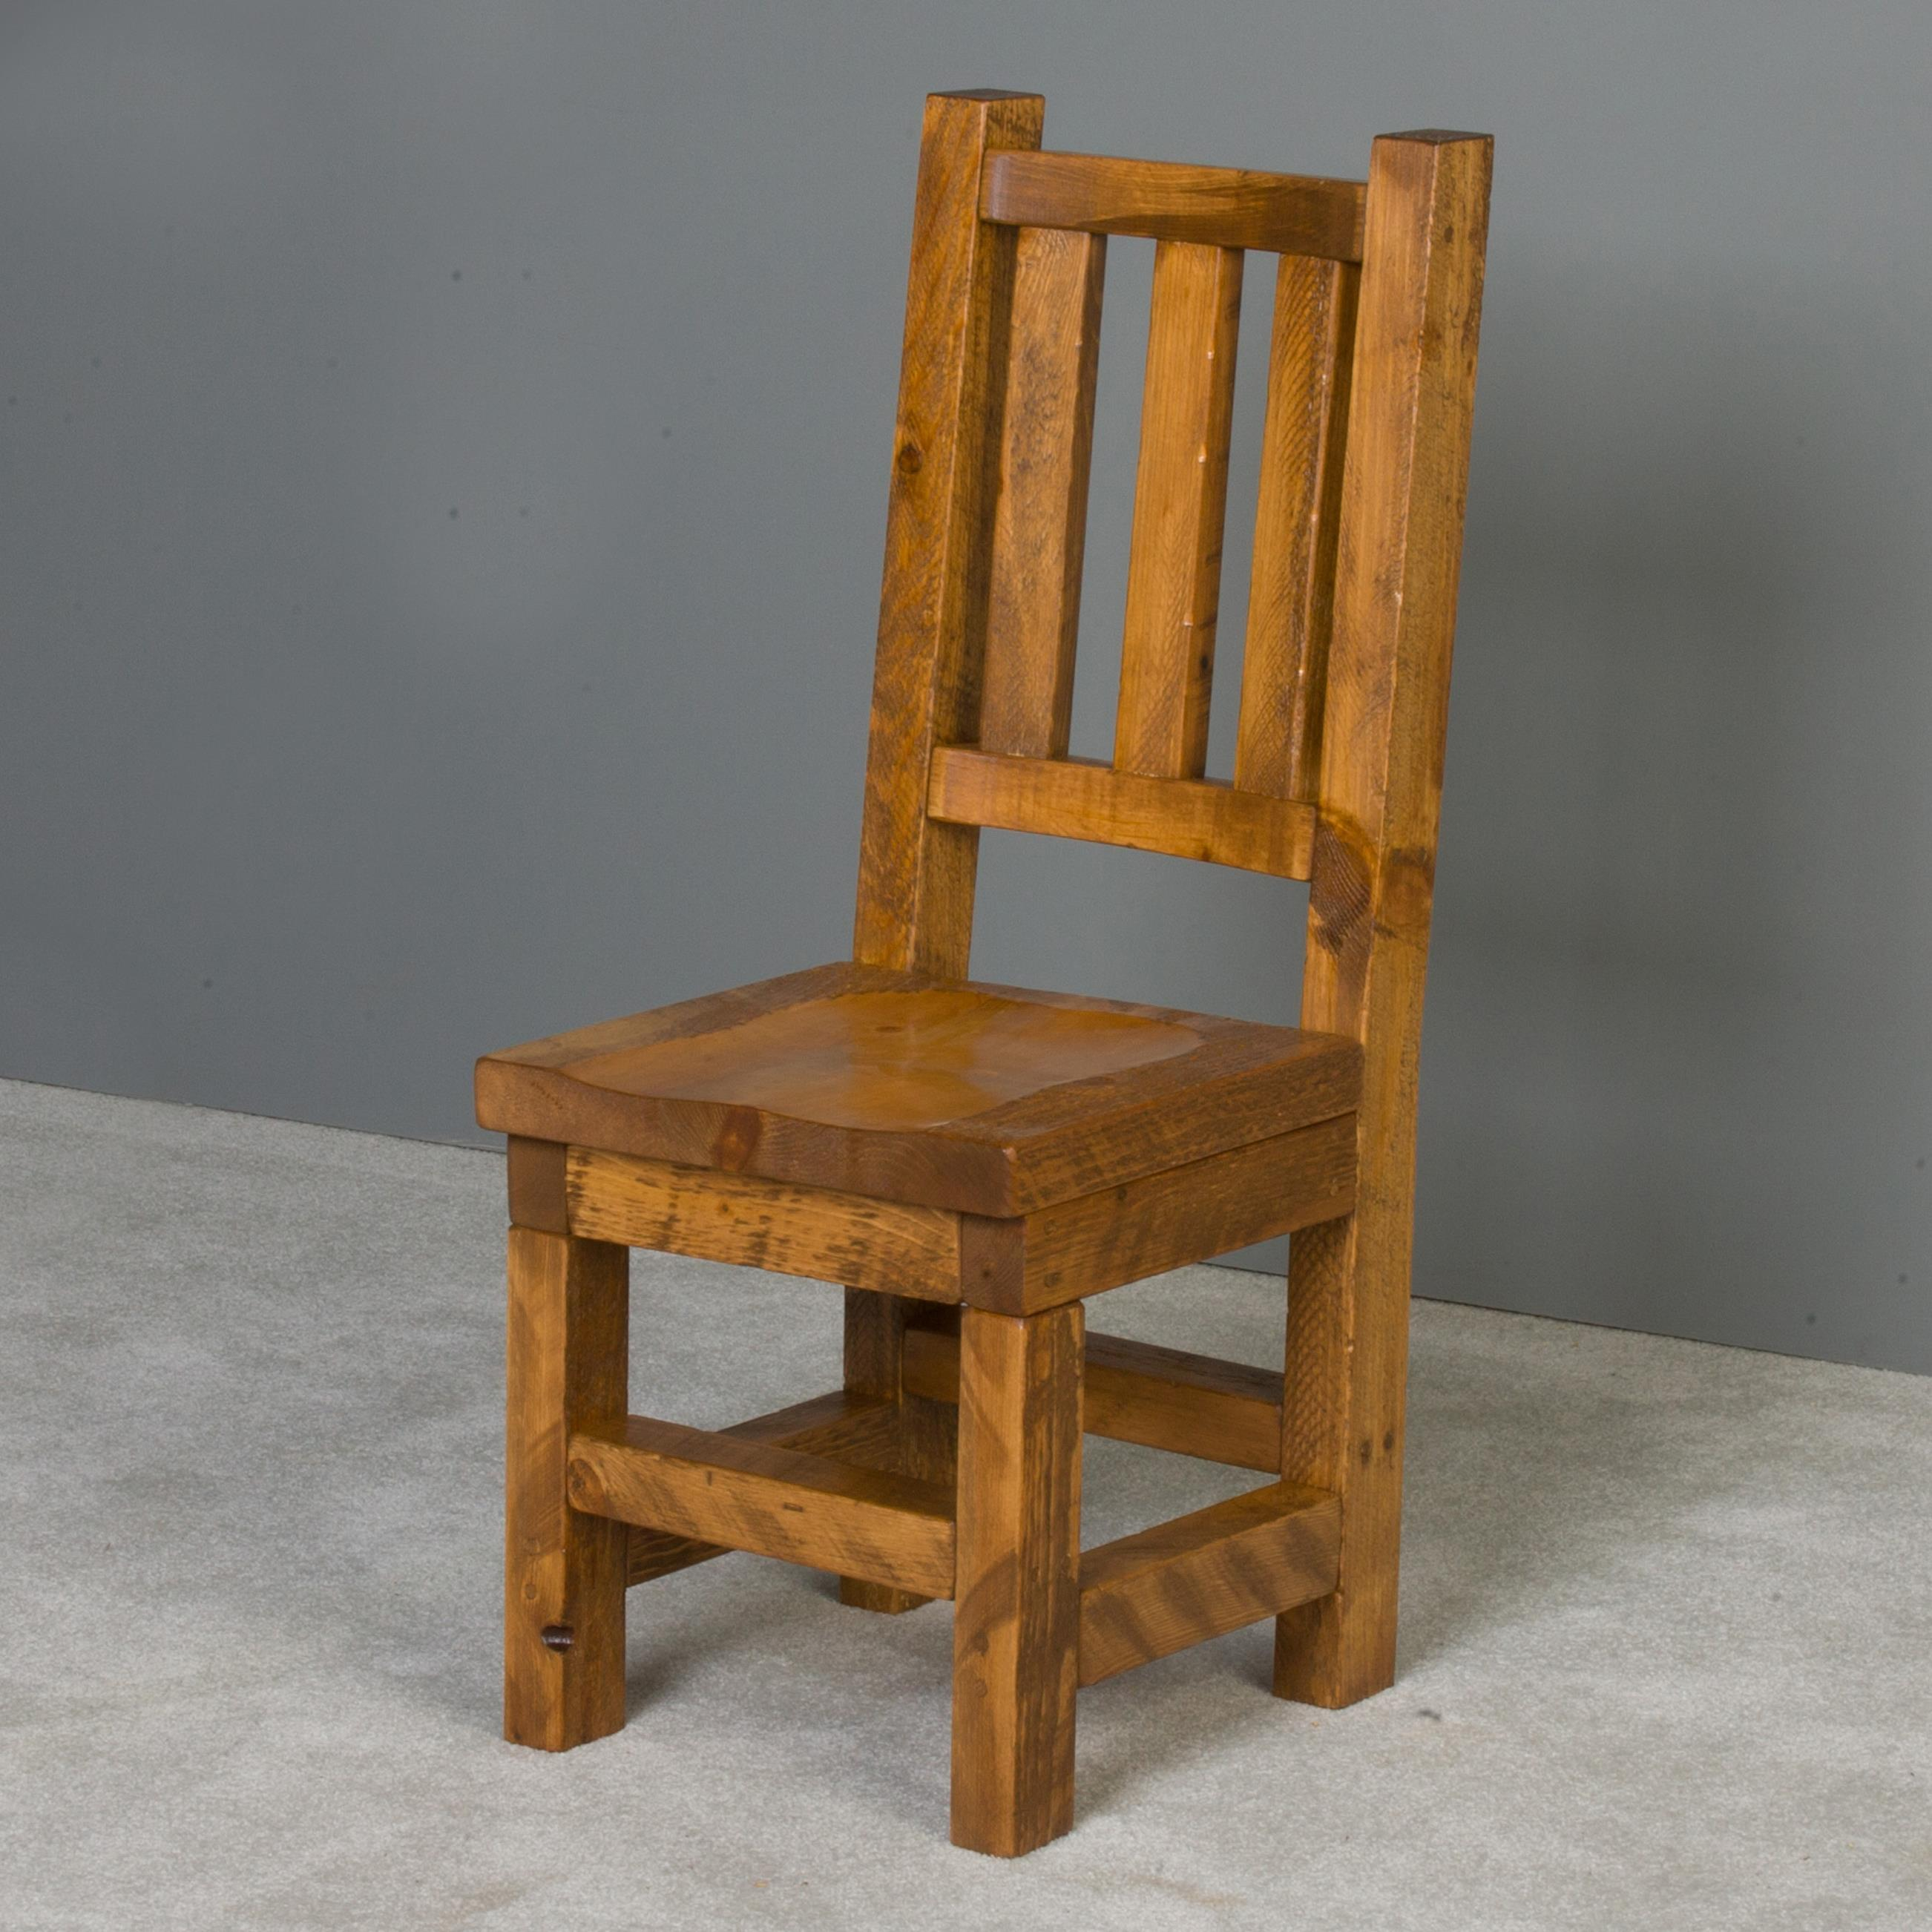 NorthShore by Becker Barnwood Trestle Chair with Wood Seat - Item Number: NBHVT91